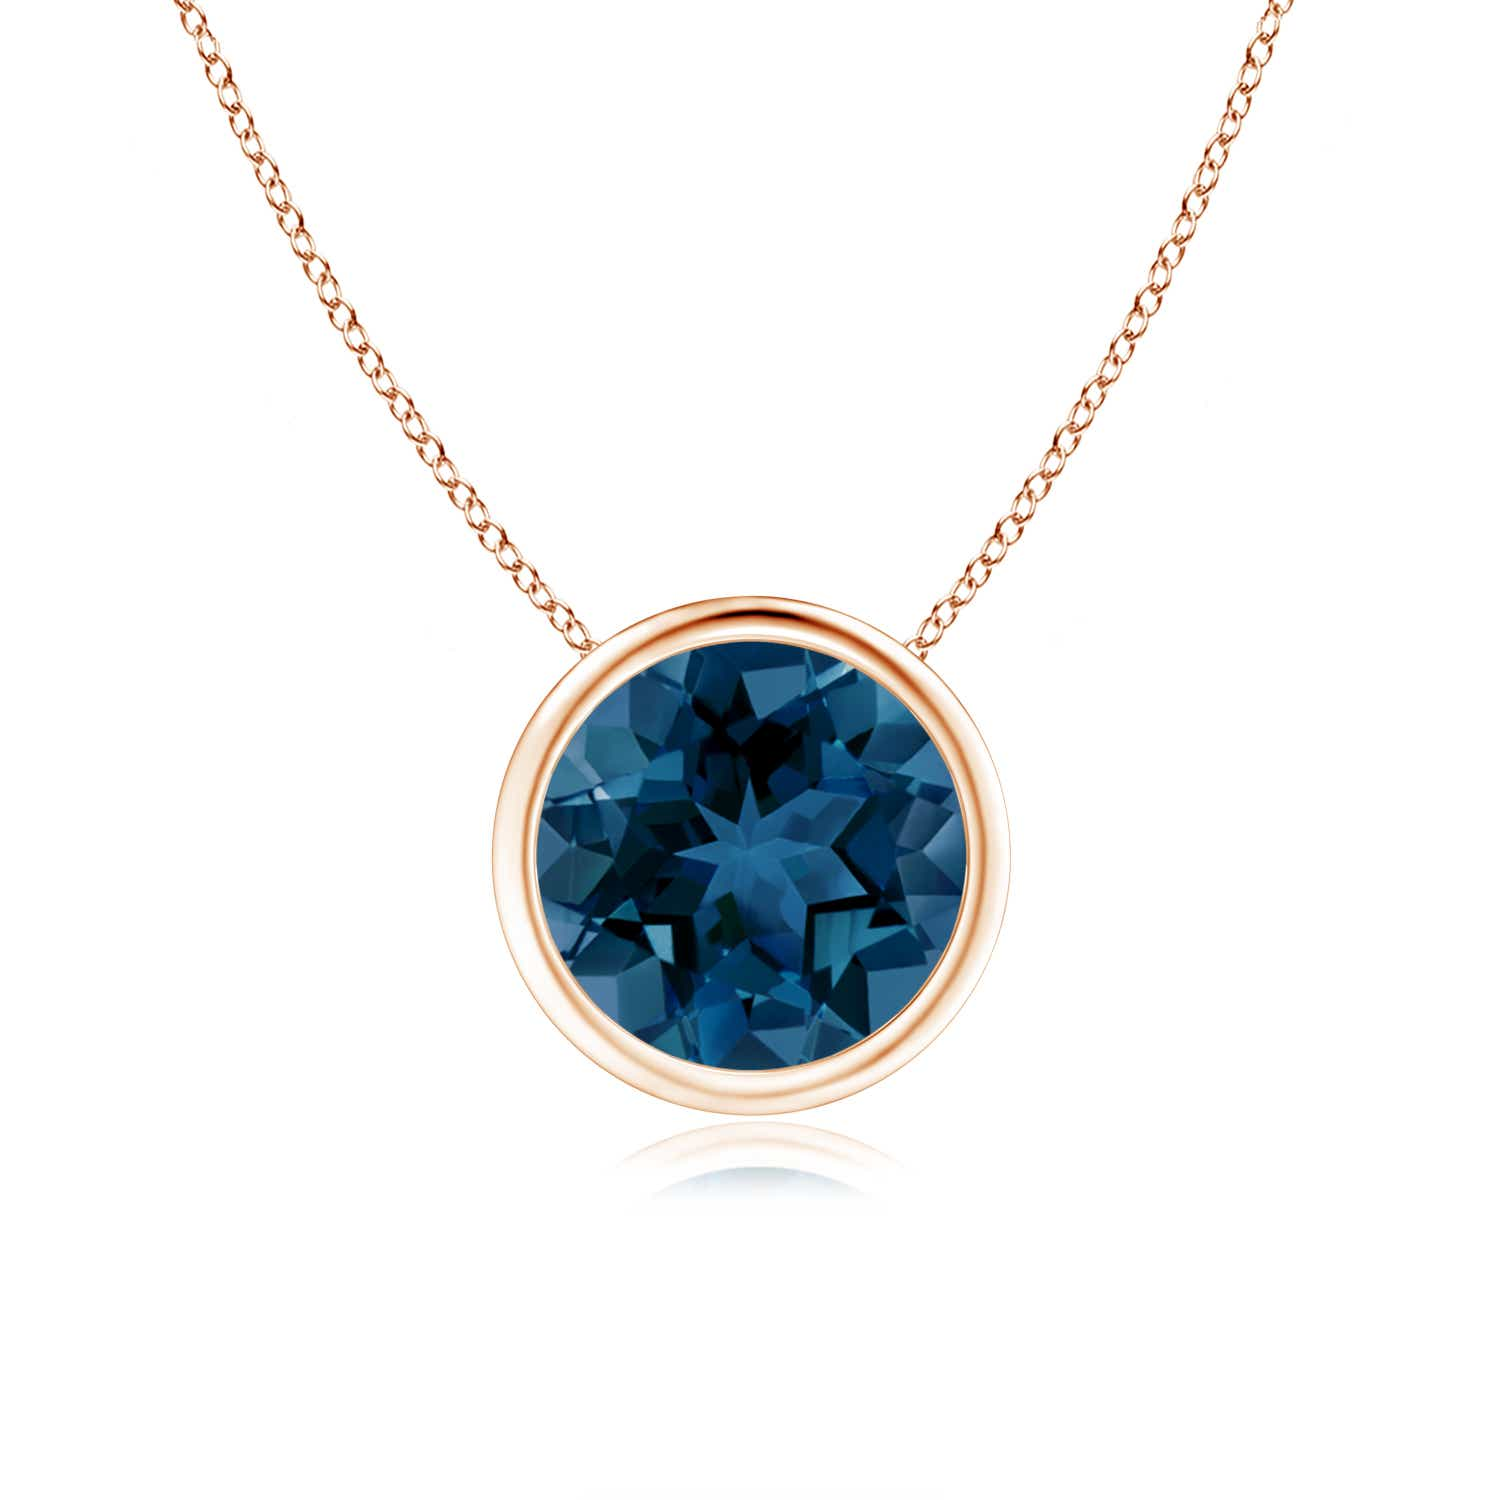 afaf ways bezel necklace ct solitaire dsc pendant set diamond products